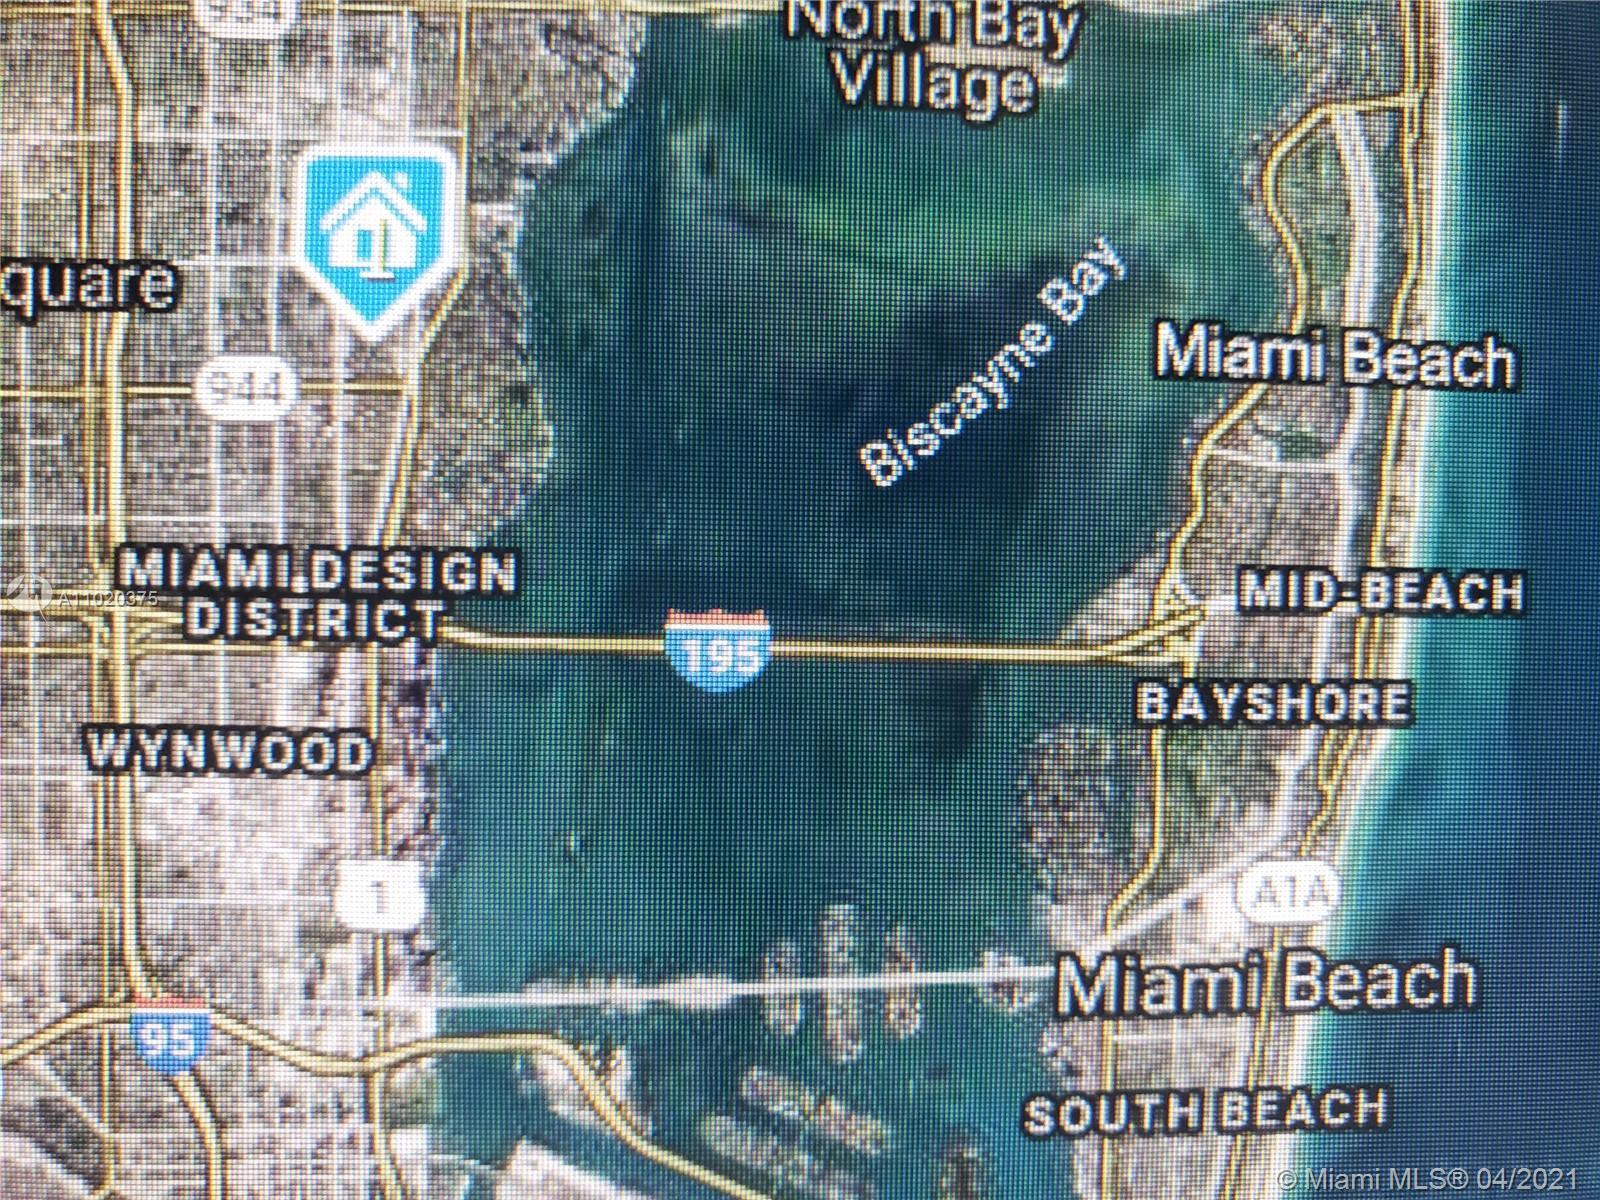 Great NE Location, walking distance to the Design District, Midtown, Biscayne Blvd. 10 minutes to Mi